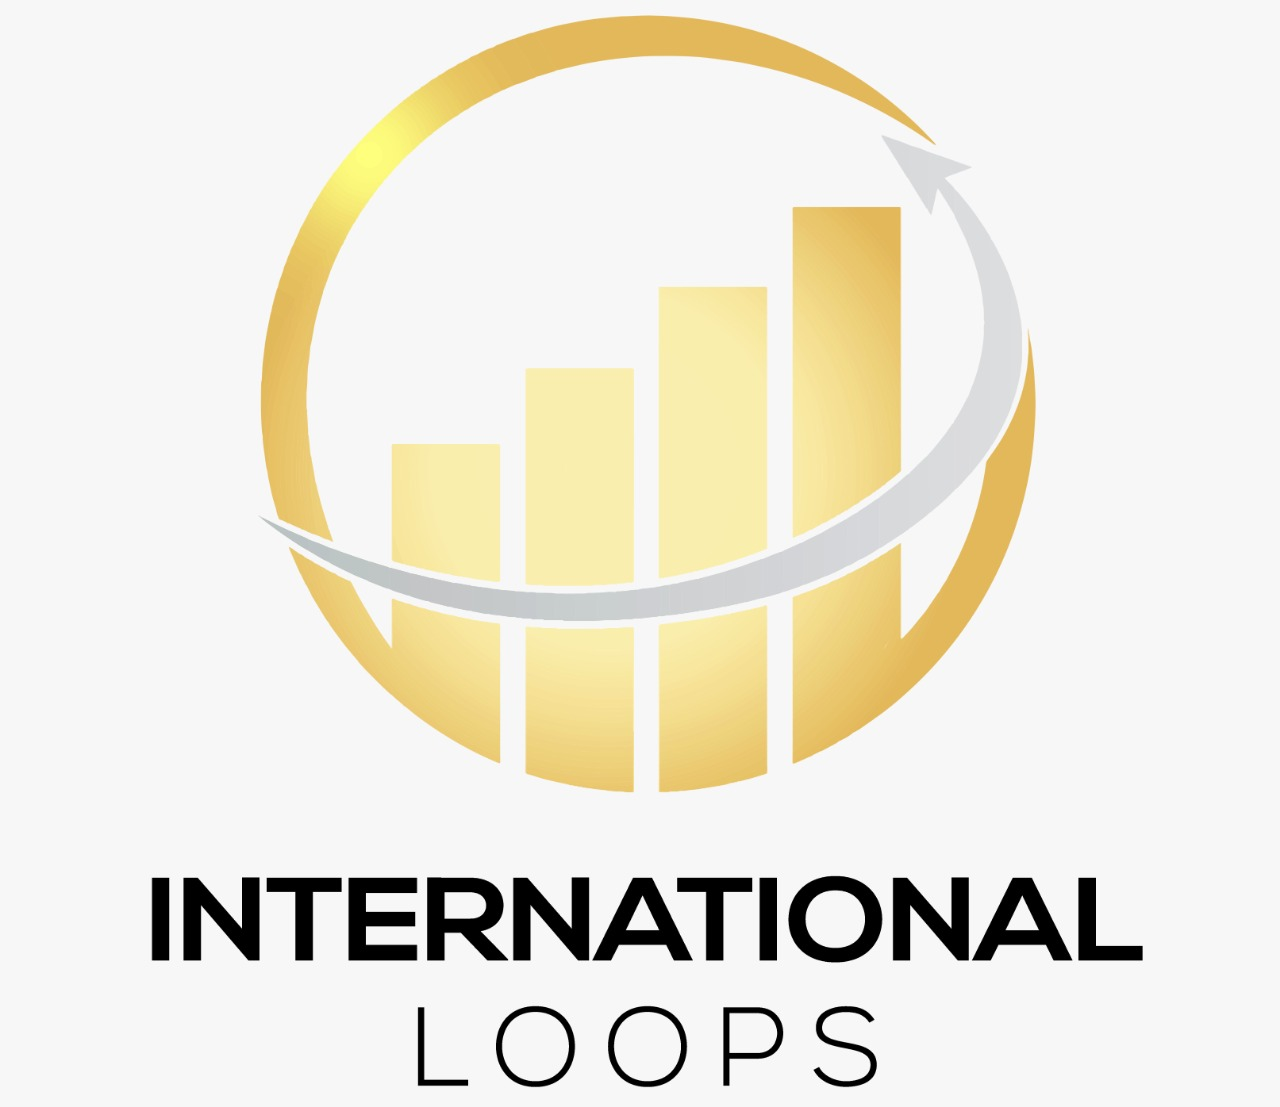 1_International_Loops.jpeg